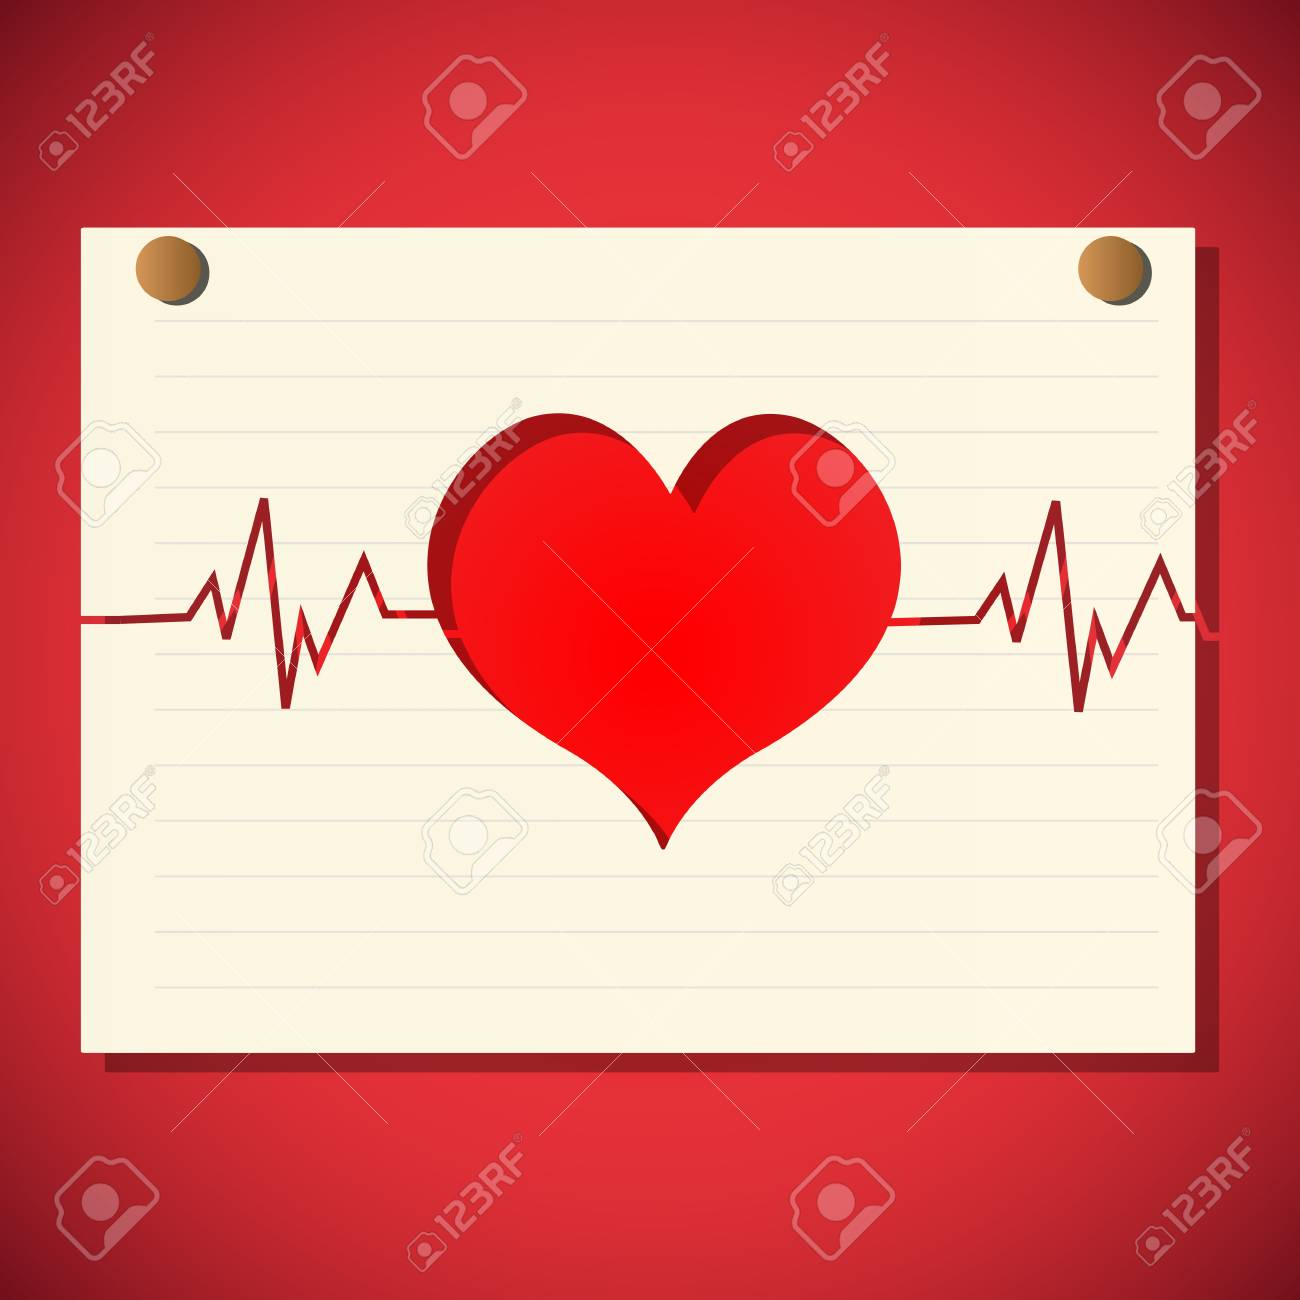 illustration of healthy heart Stock Vector - 8441758